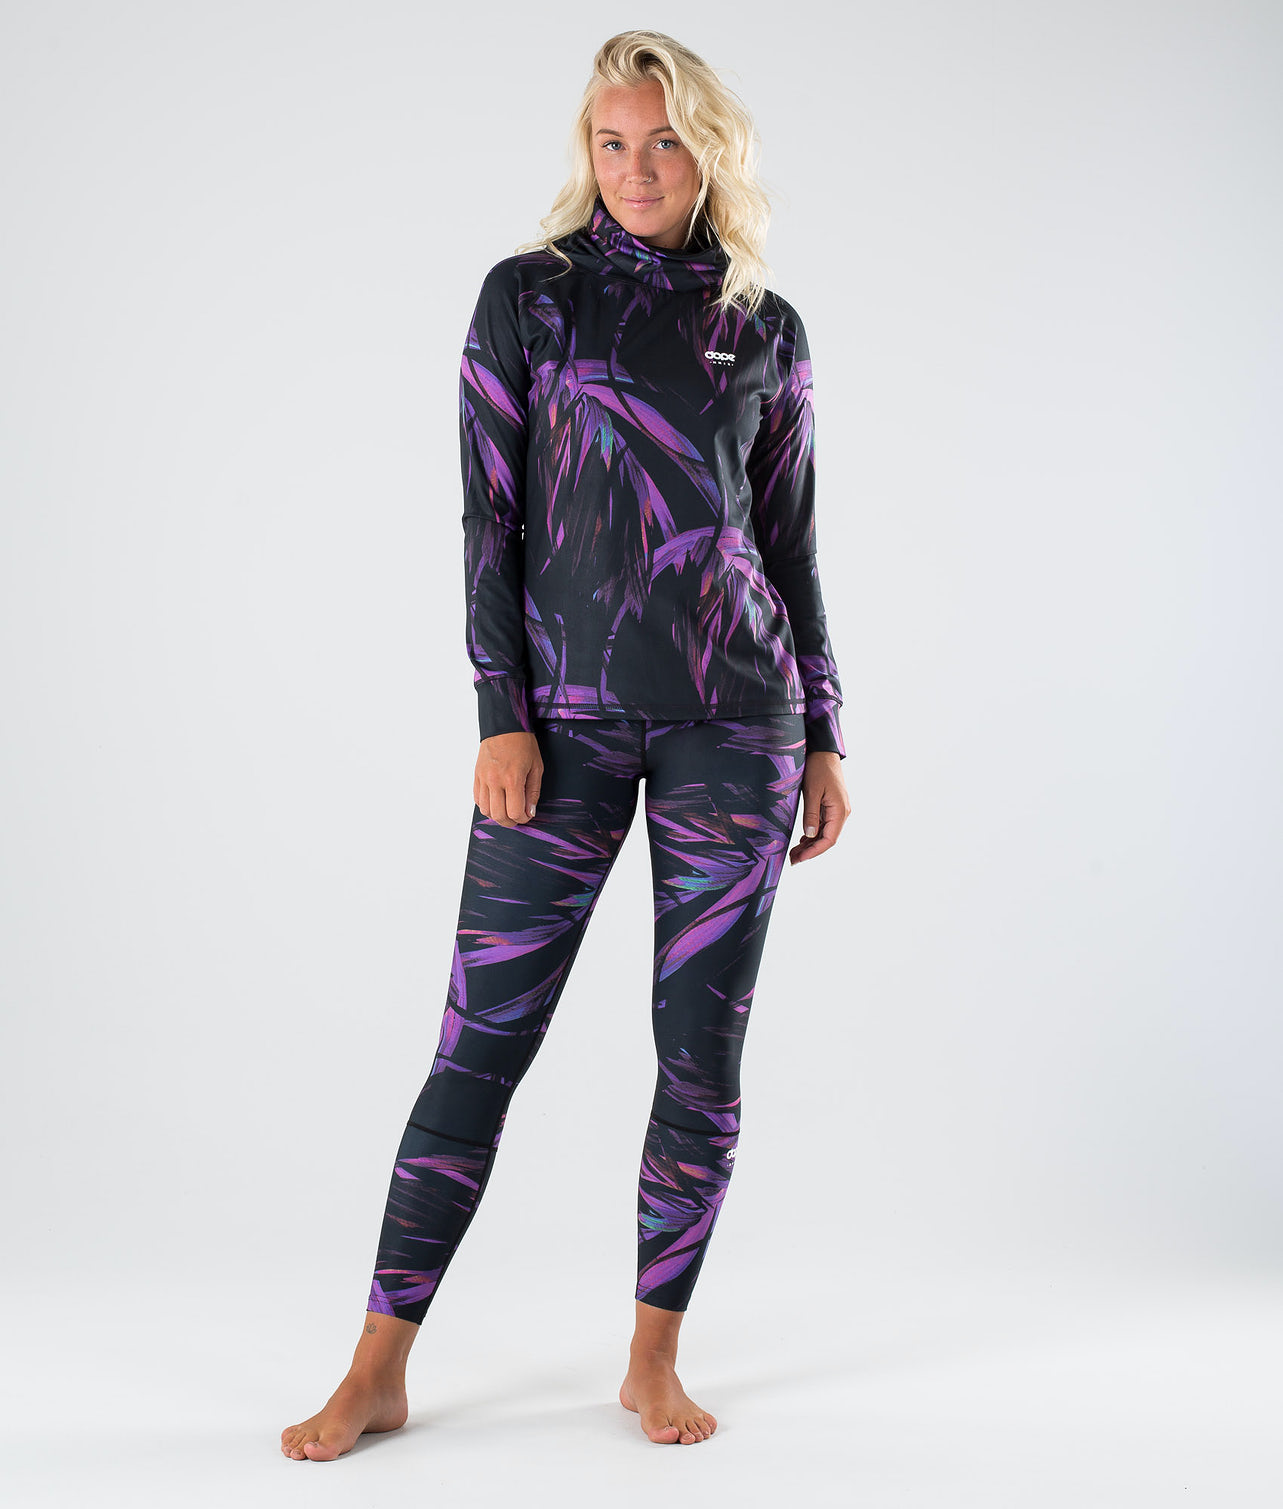 Buy Snuggle OG W Base Layer Top from Dope at Ridestore.com - Always free shipping, free returns and 30 days money back guarantee